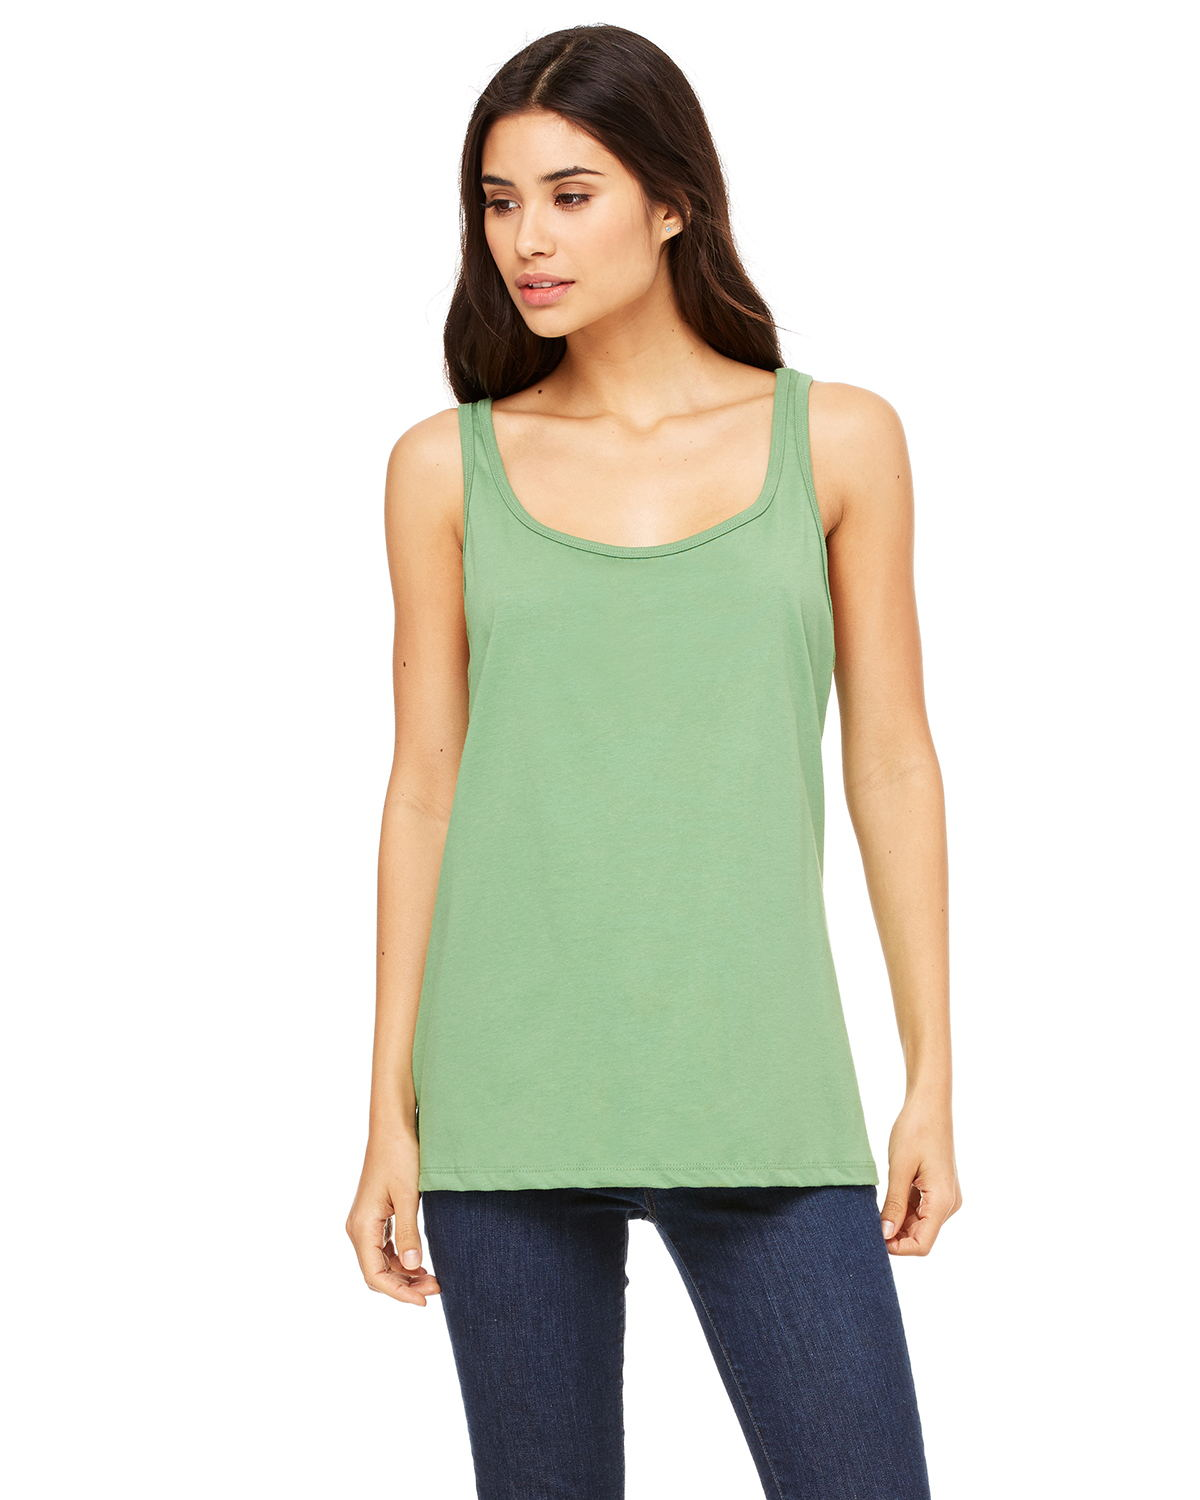 Bella + Canvas 6488 - Ladies' Relaxed Jersey Tank